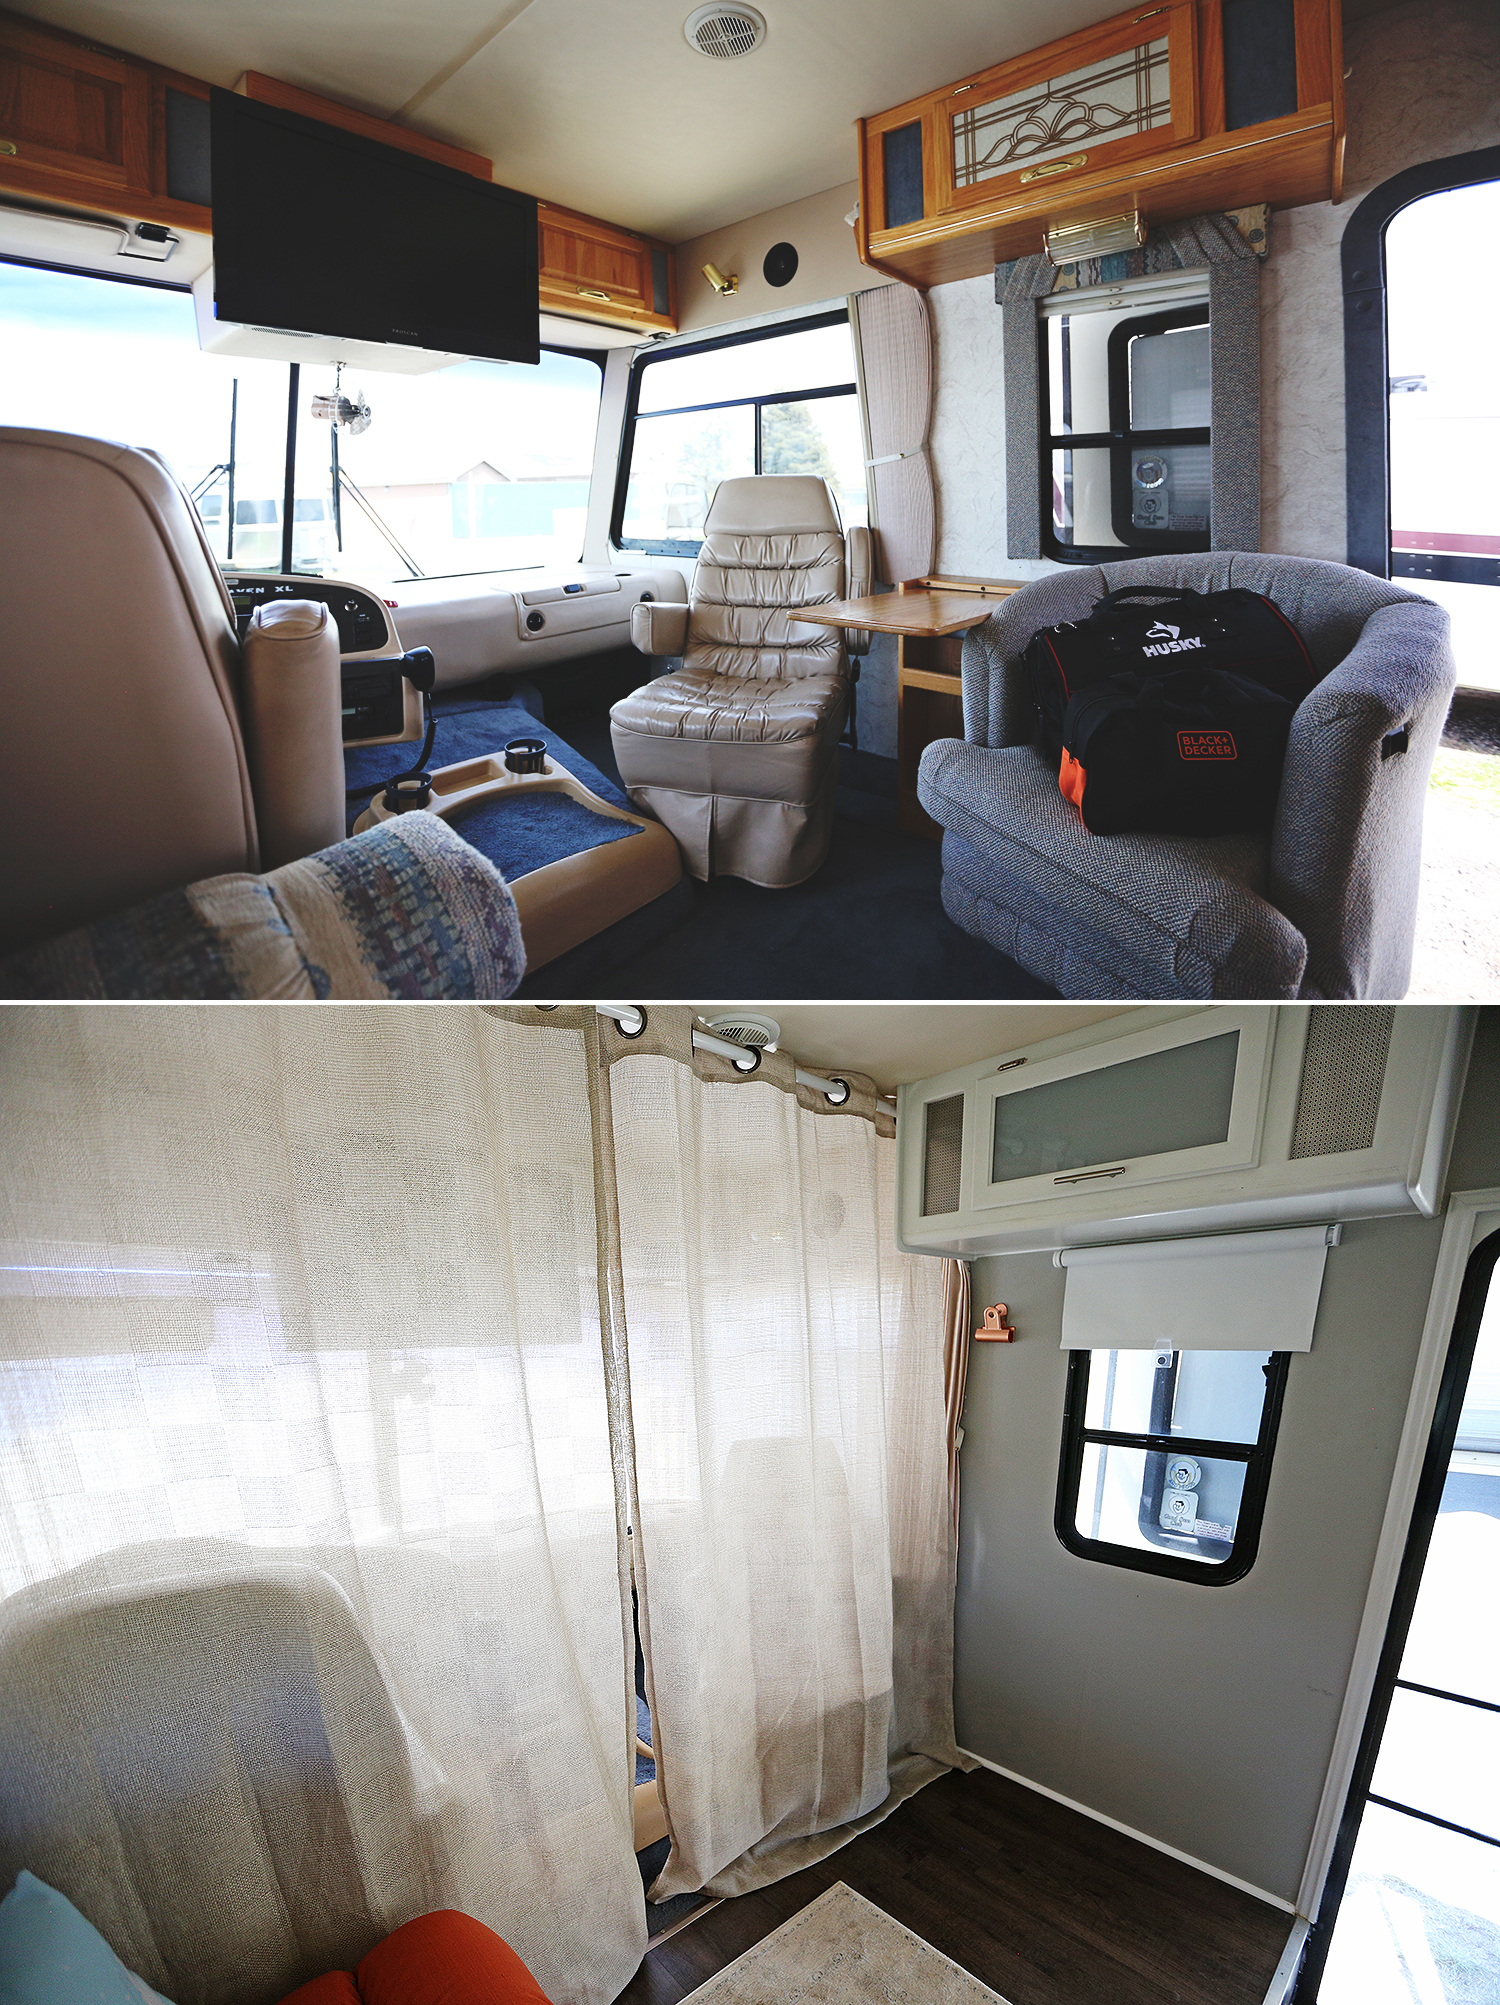 """We installed curtains separating the cockpit from the home which made a huge difference. In fact, right after hanging them I texted Mike and said, """"The curtains are a game changer!"""""""